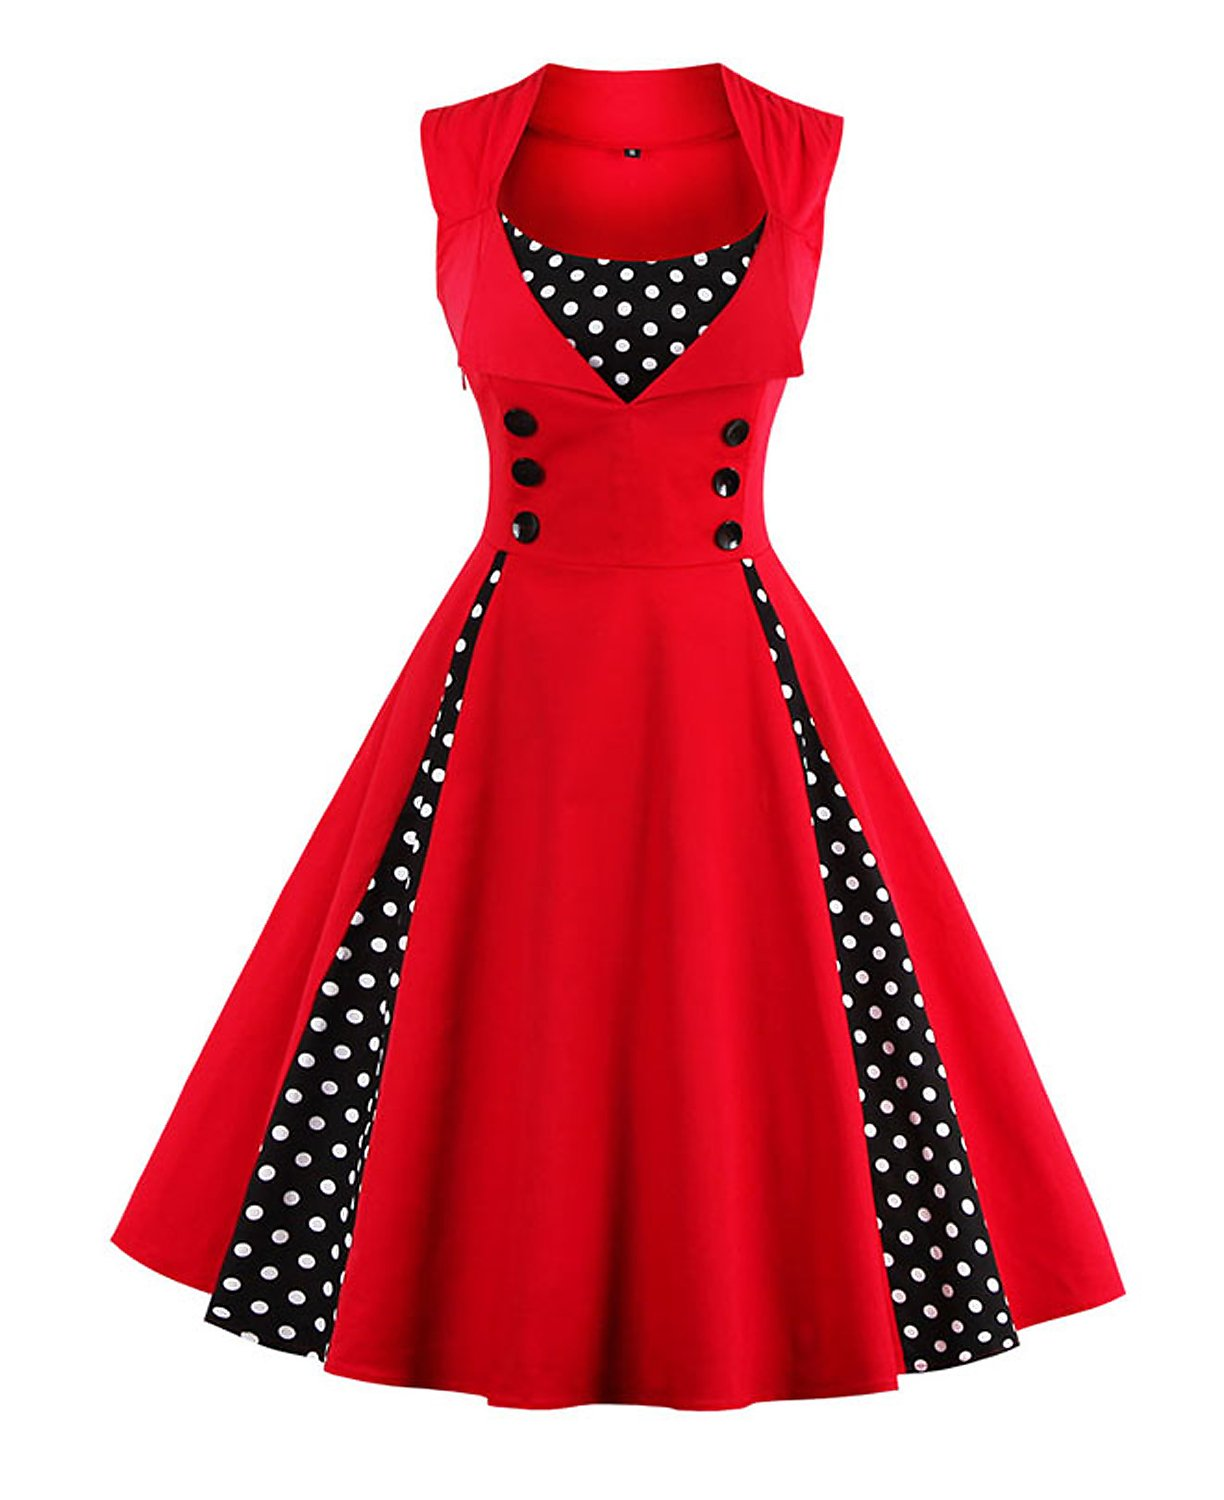 KILLREAL Women's Polka Dot Retro Vintage Style Cocktail Party Swing Dresses 3